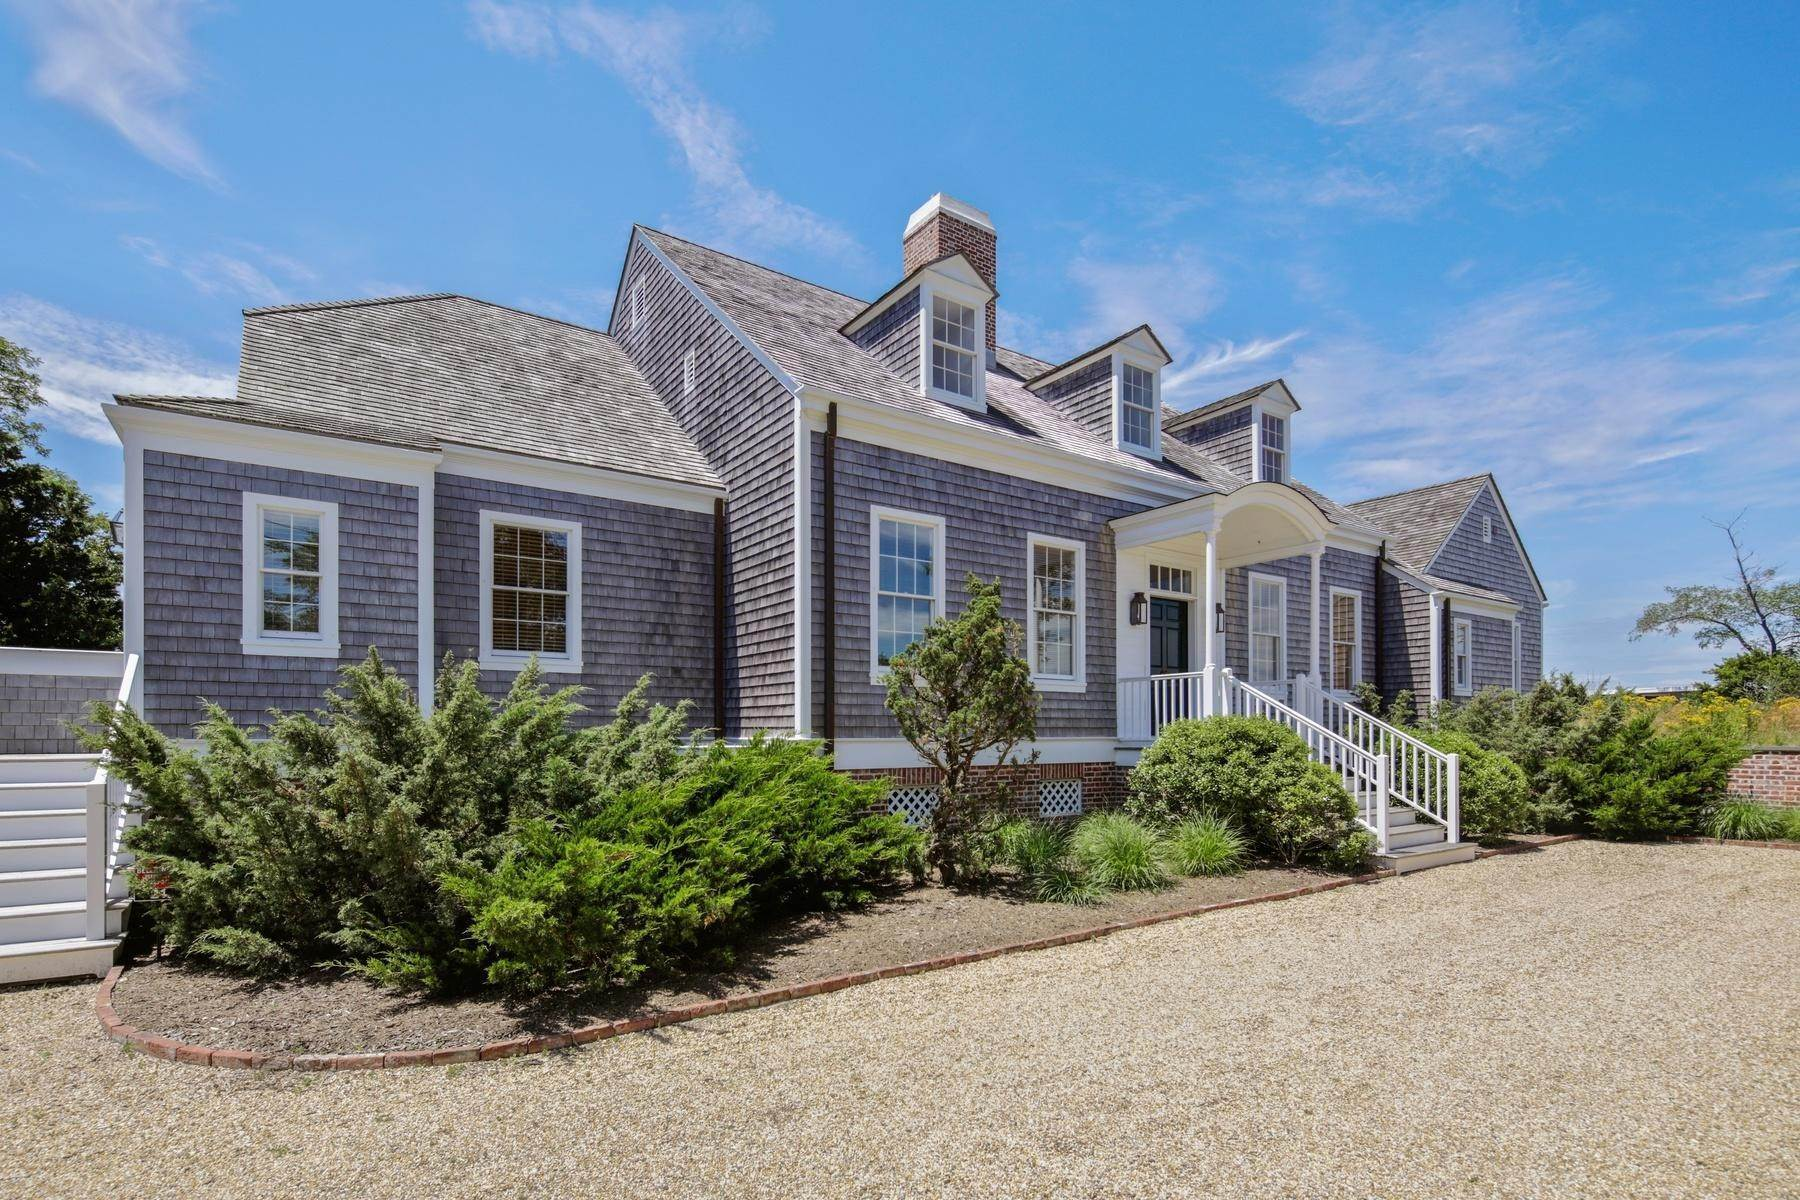 2. Single Family Home at Bullhead Bay Front, New Construction Southampton, NY 11968